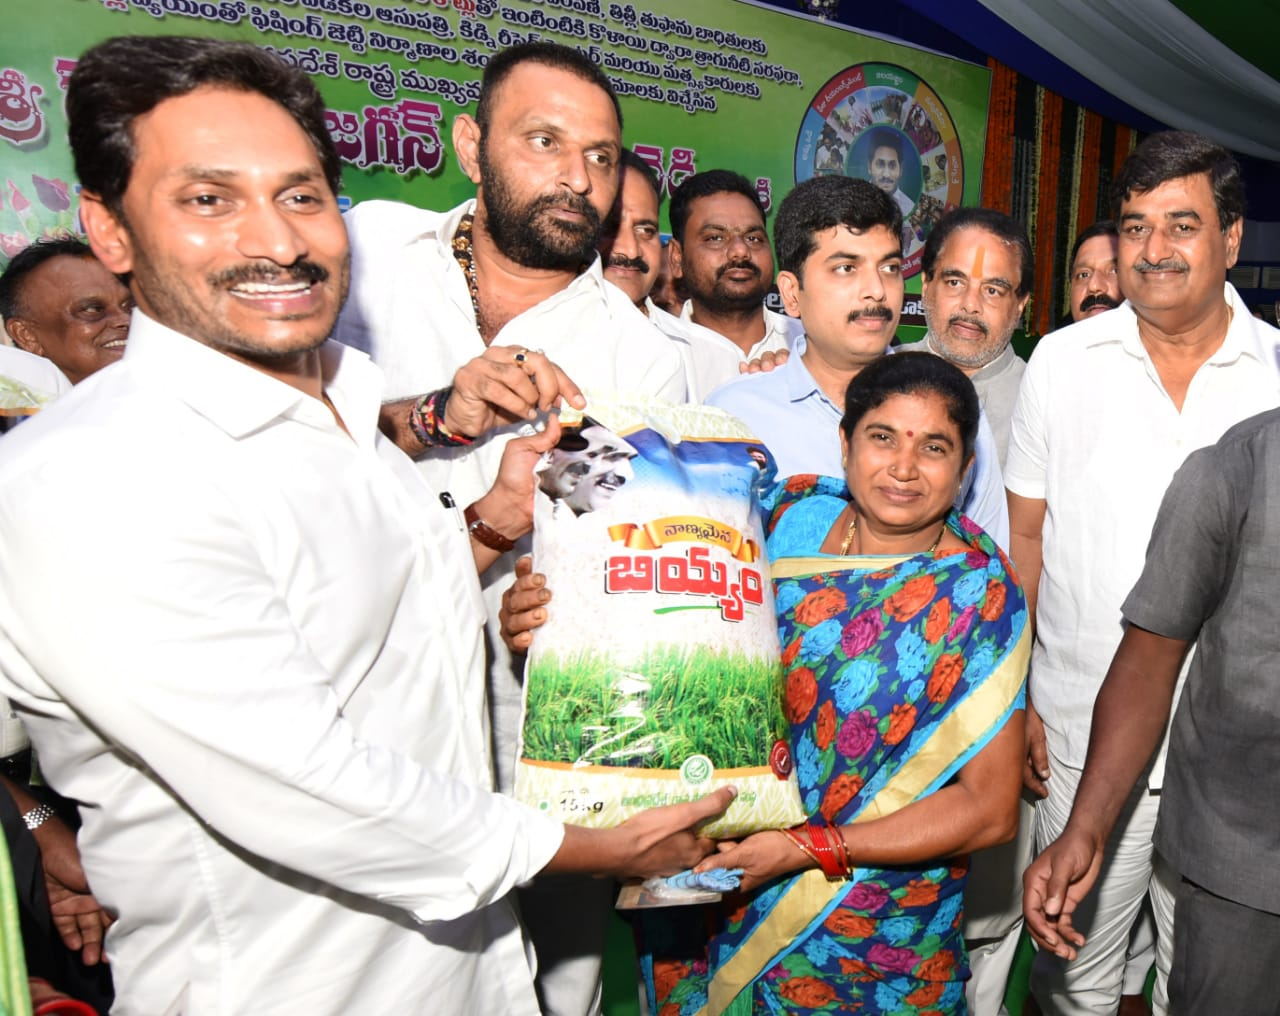 Chief Minister YS Jagan Mohan Reddy at an event in Srikakulam on Friday. Photo/ANI